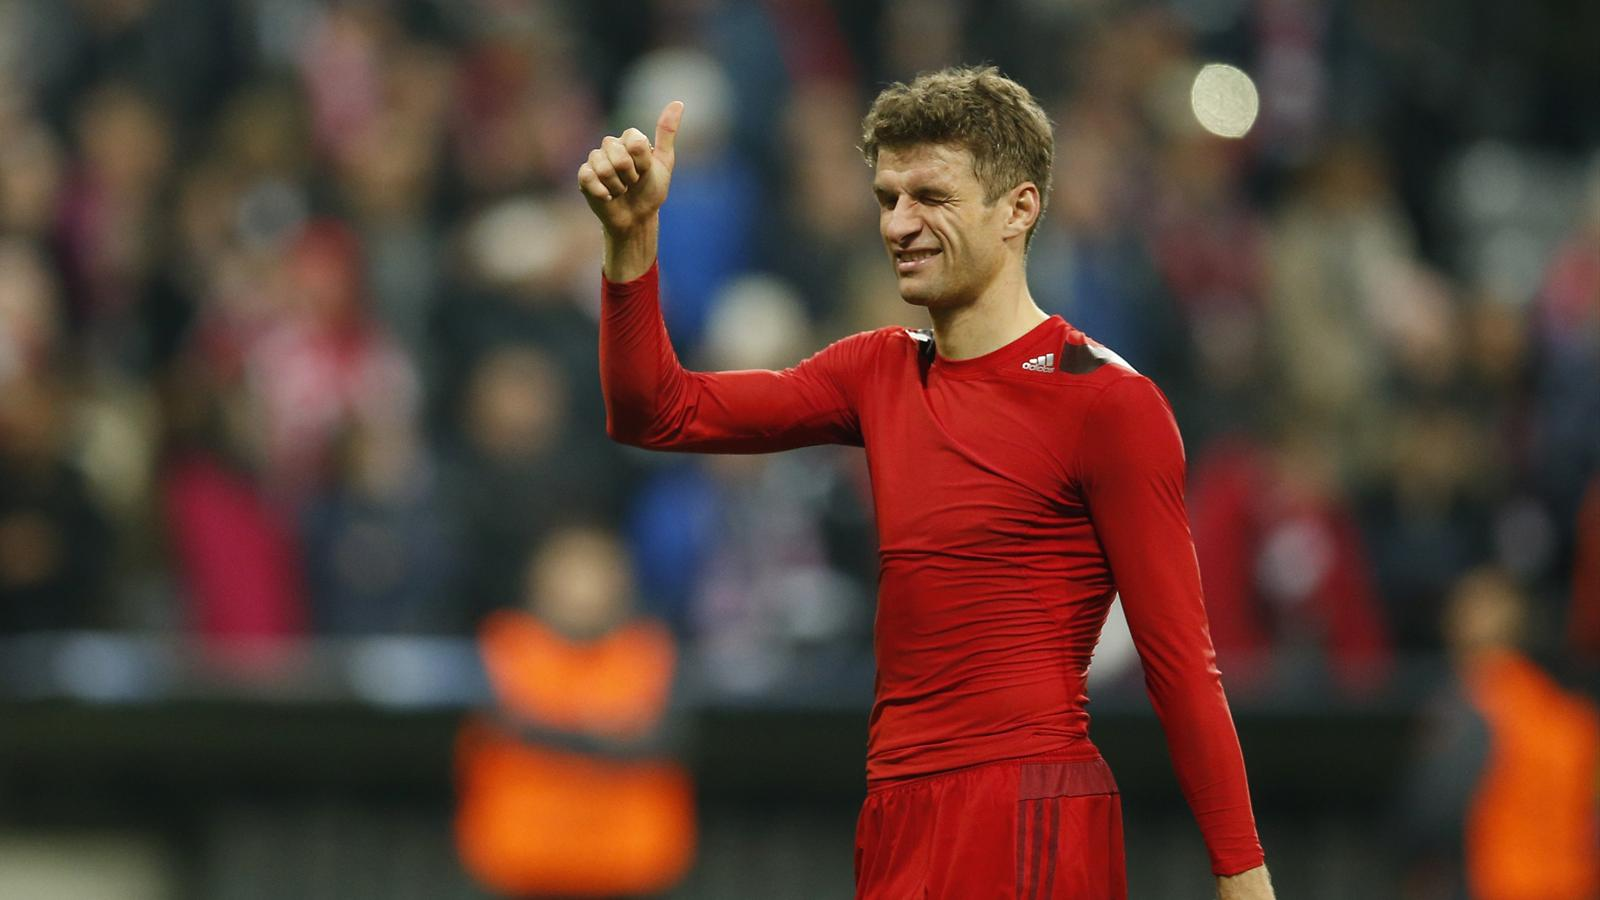 Bayern Munich's Thomas Muller celebrates at the end of the match